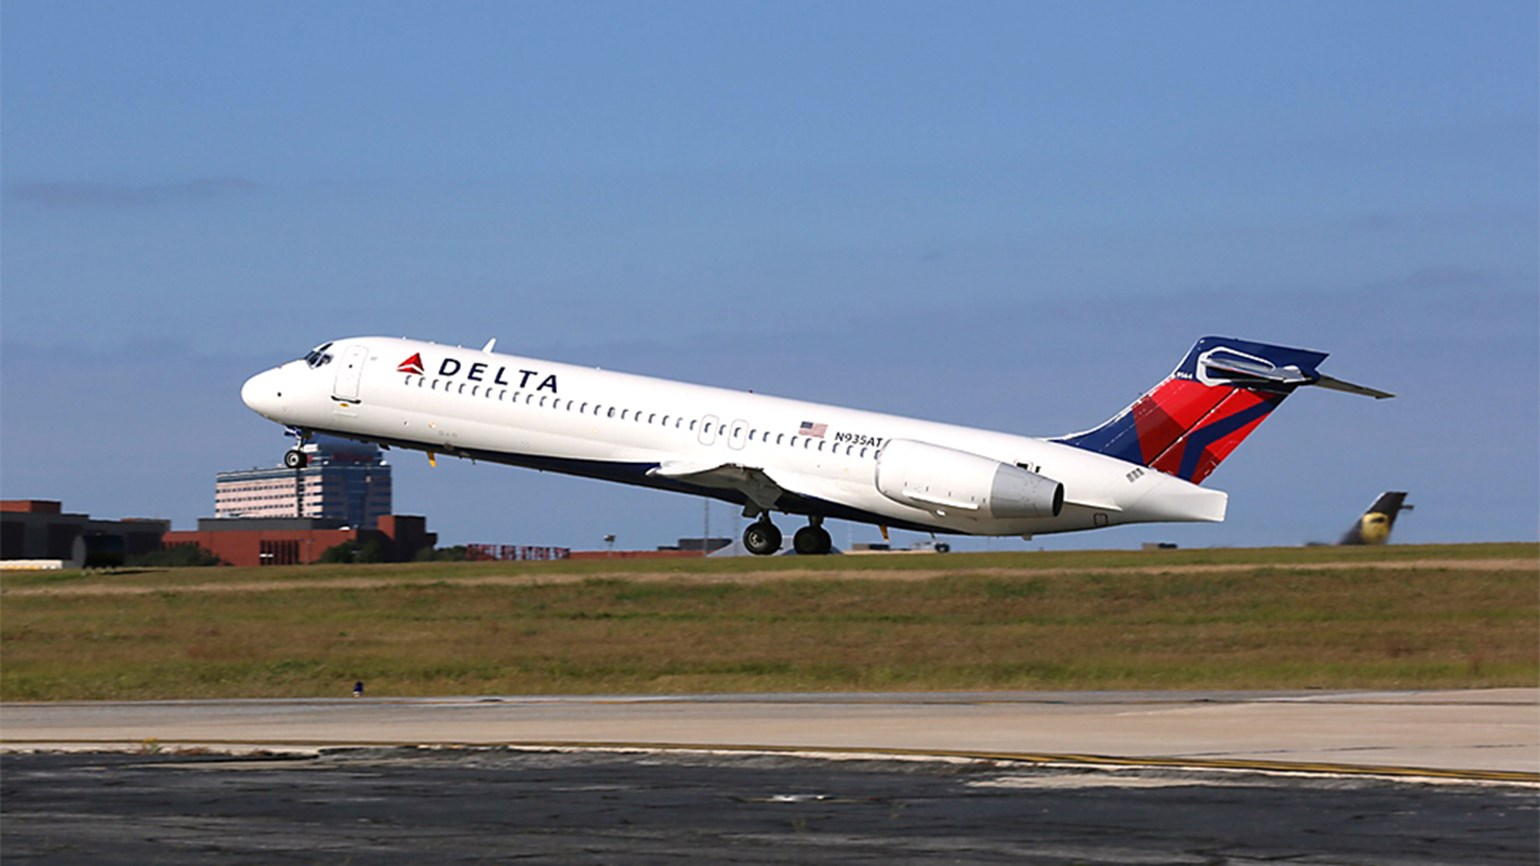 Delta's international commission cut could be the first of many